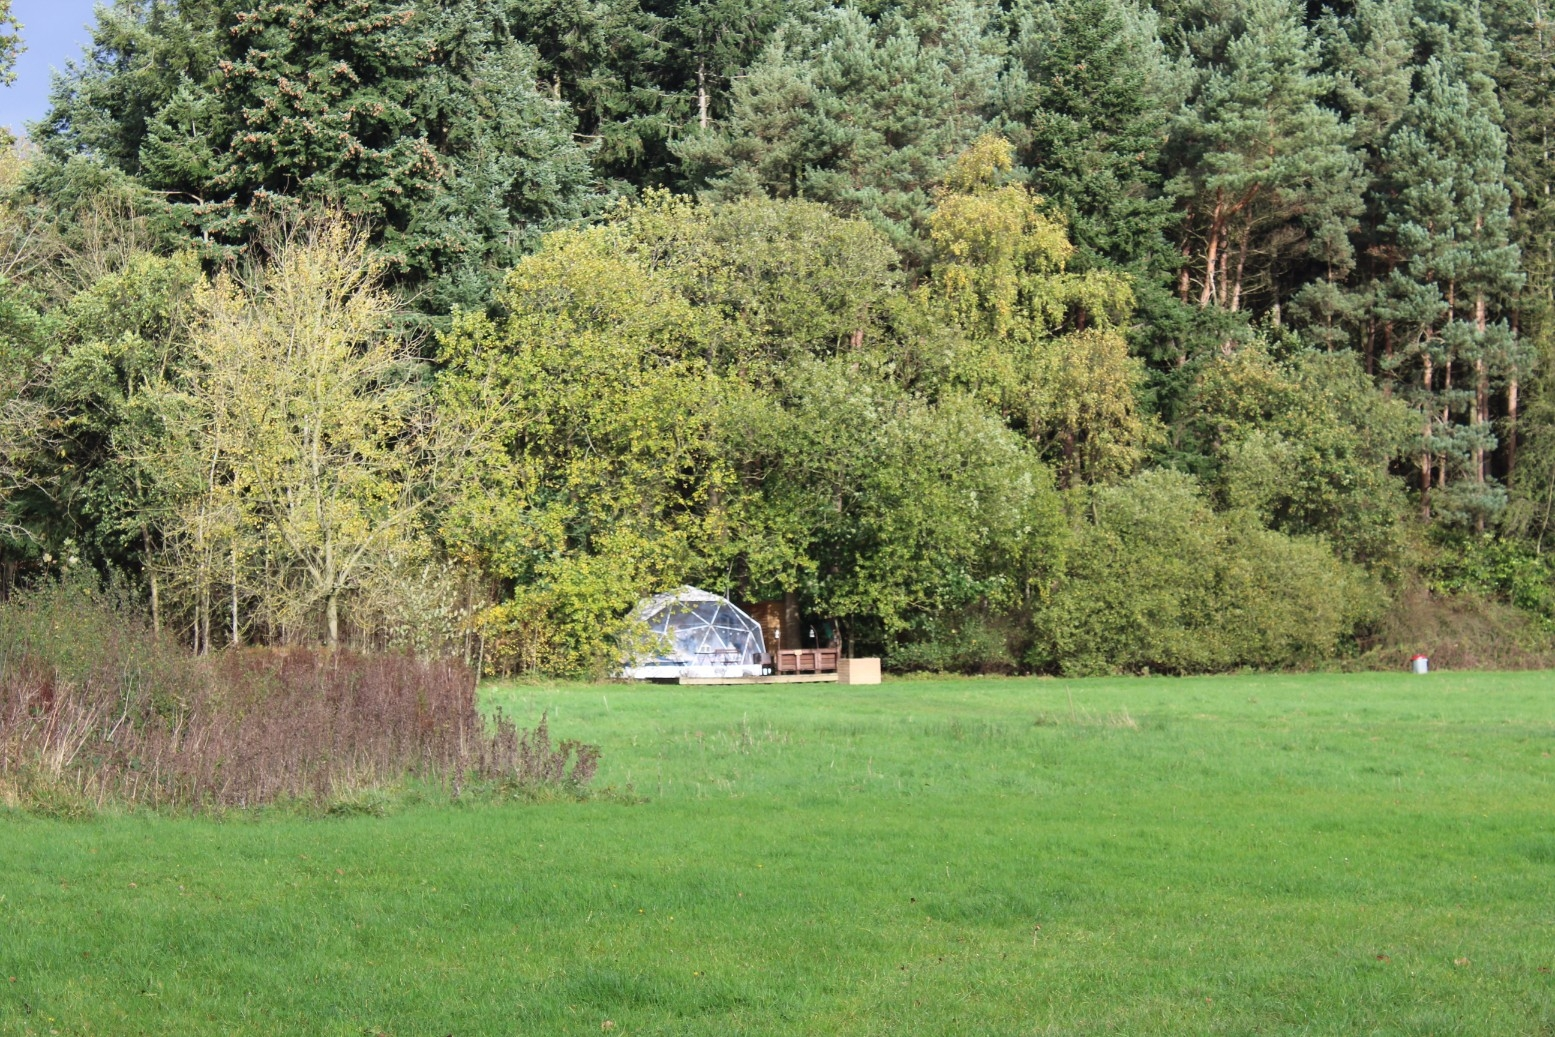 Camp Katur Glamping North Yorkshire Geodome Review (13)